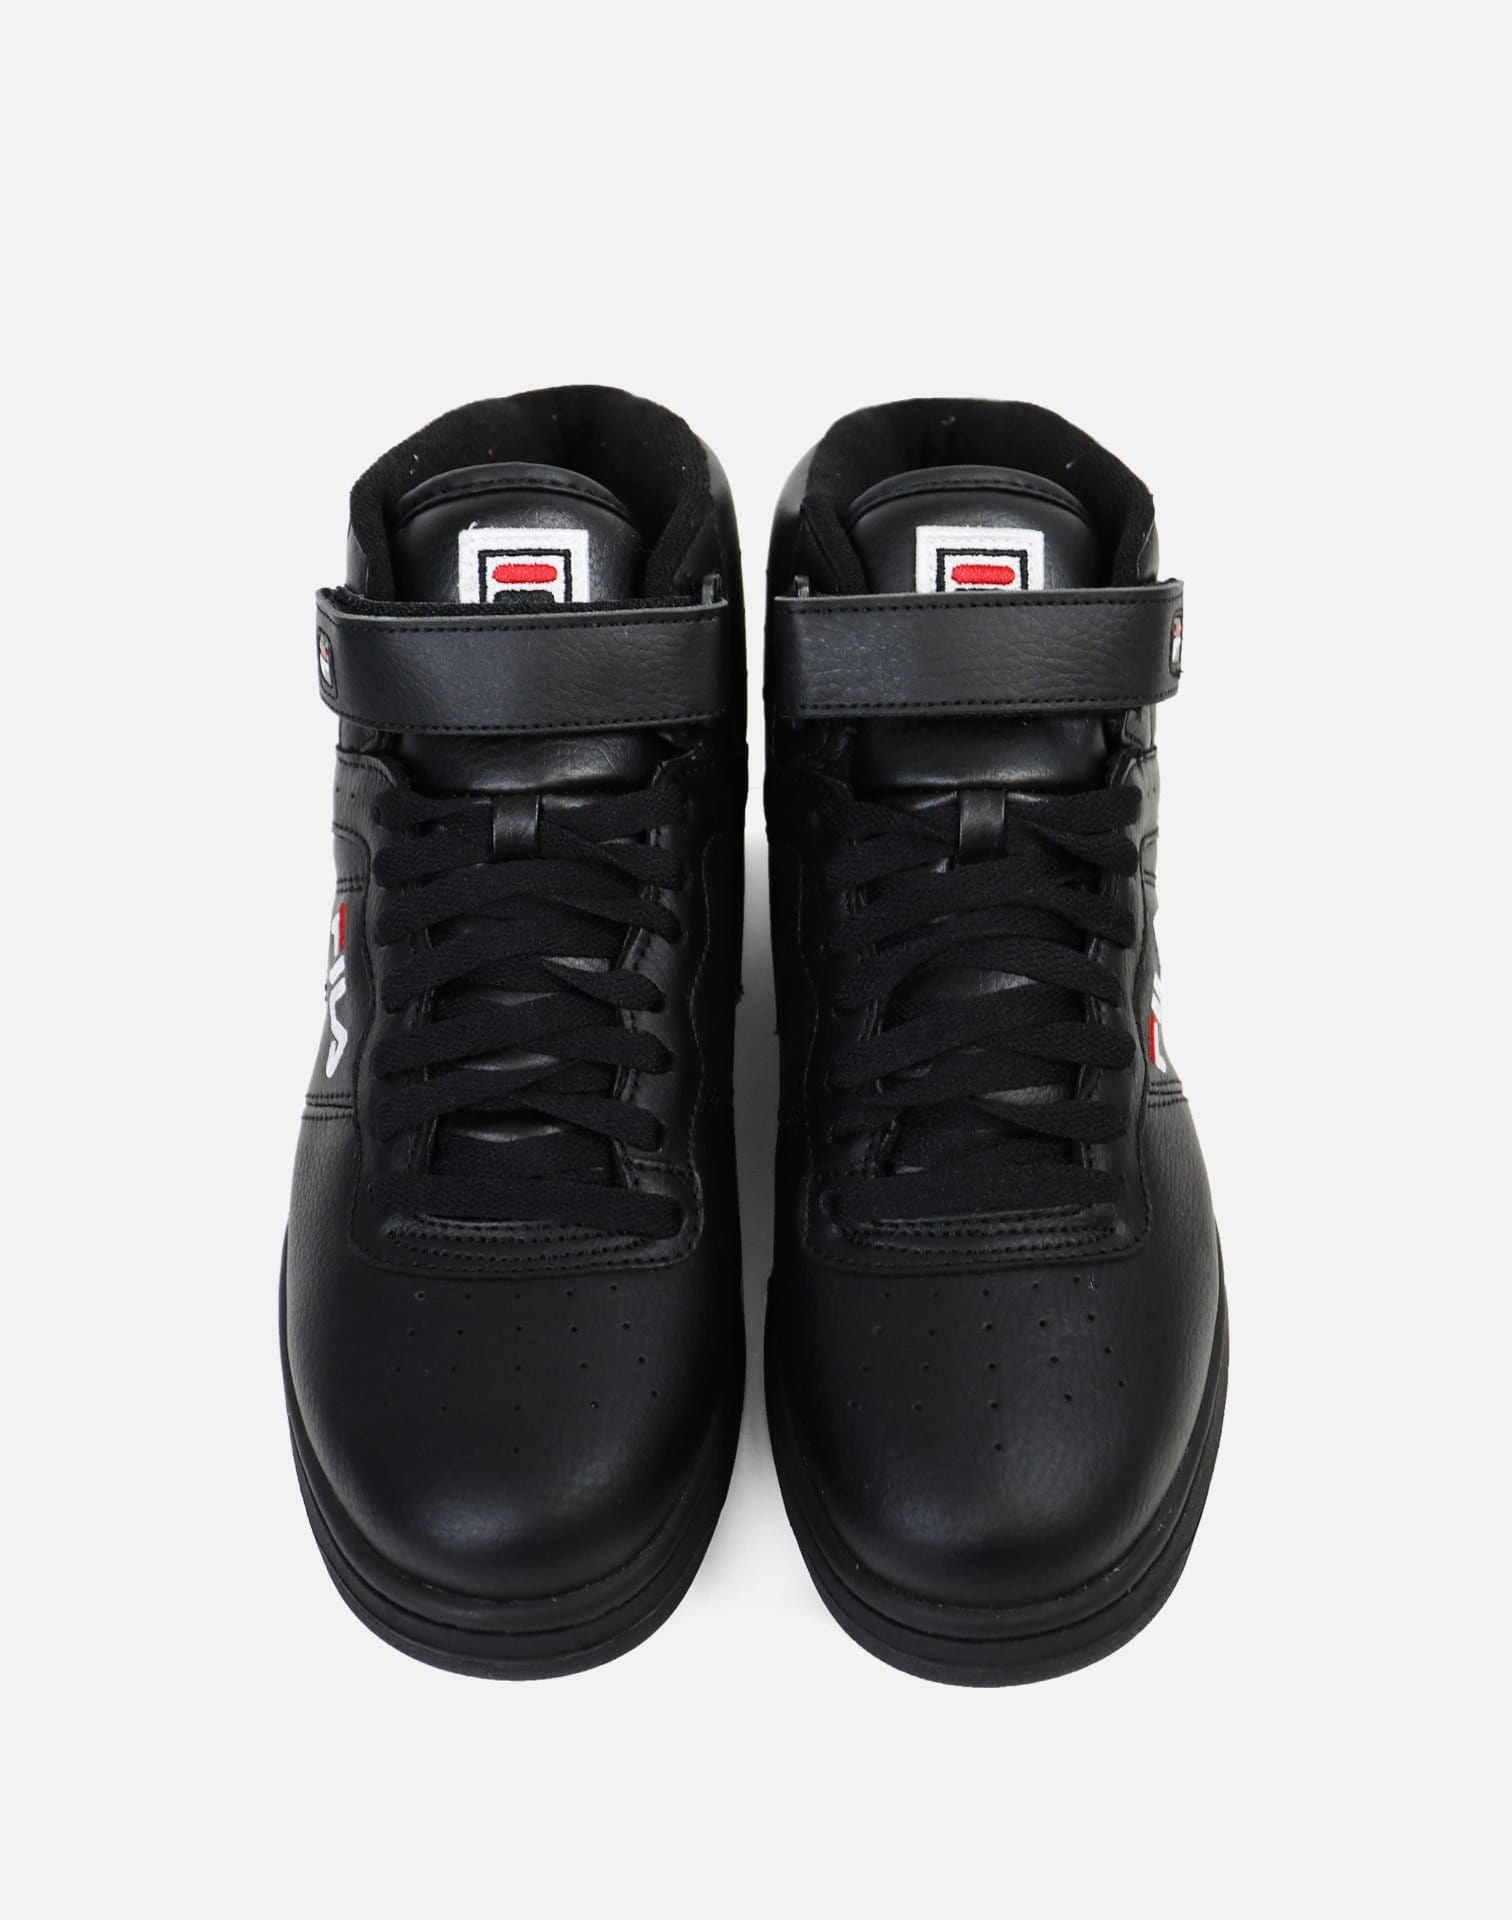 Fila F-13 (Black/Red-White)